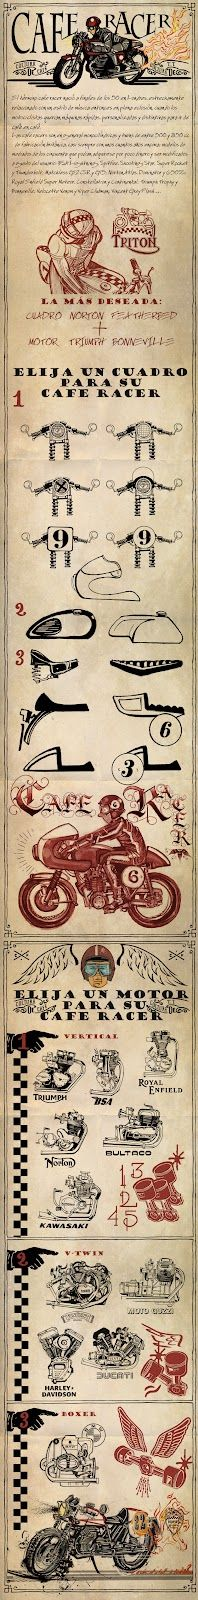 Cafe Racers & Vintage Motorcycles...